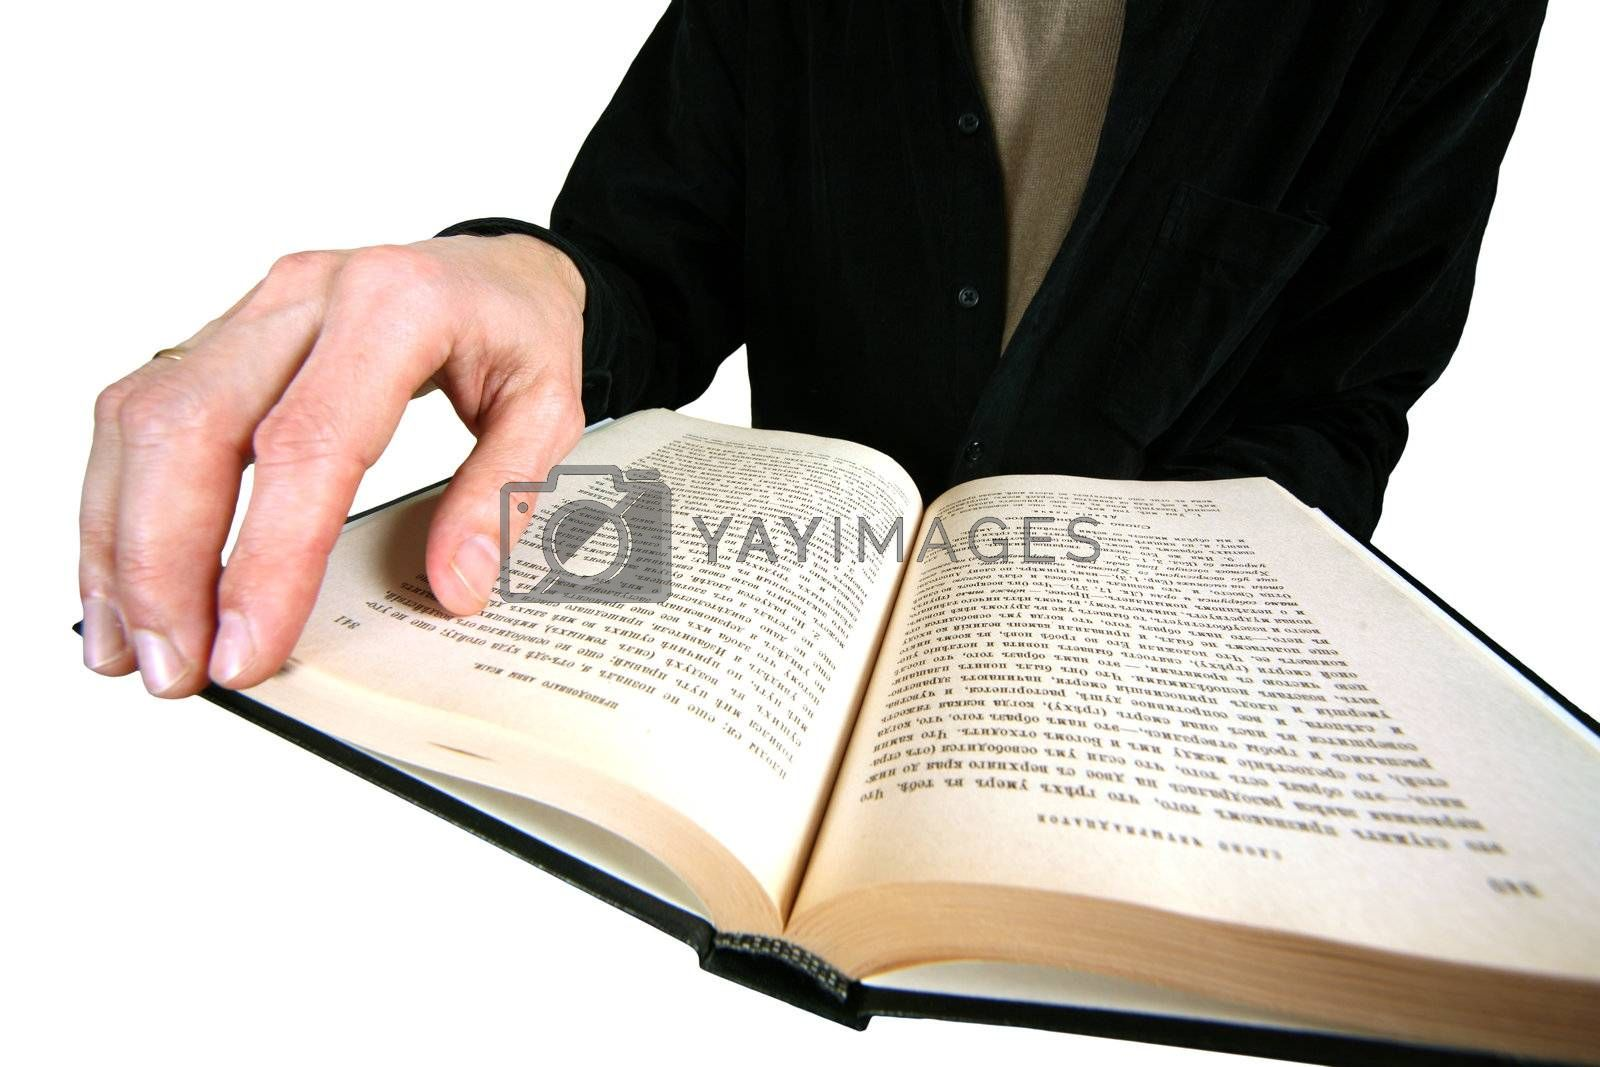 The male hand holds the open book